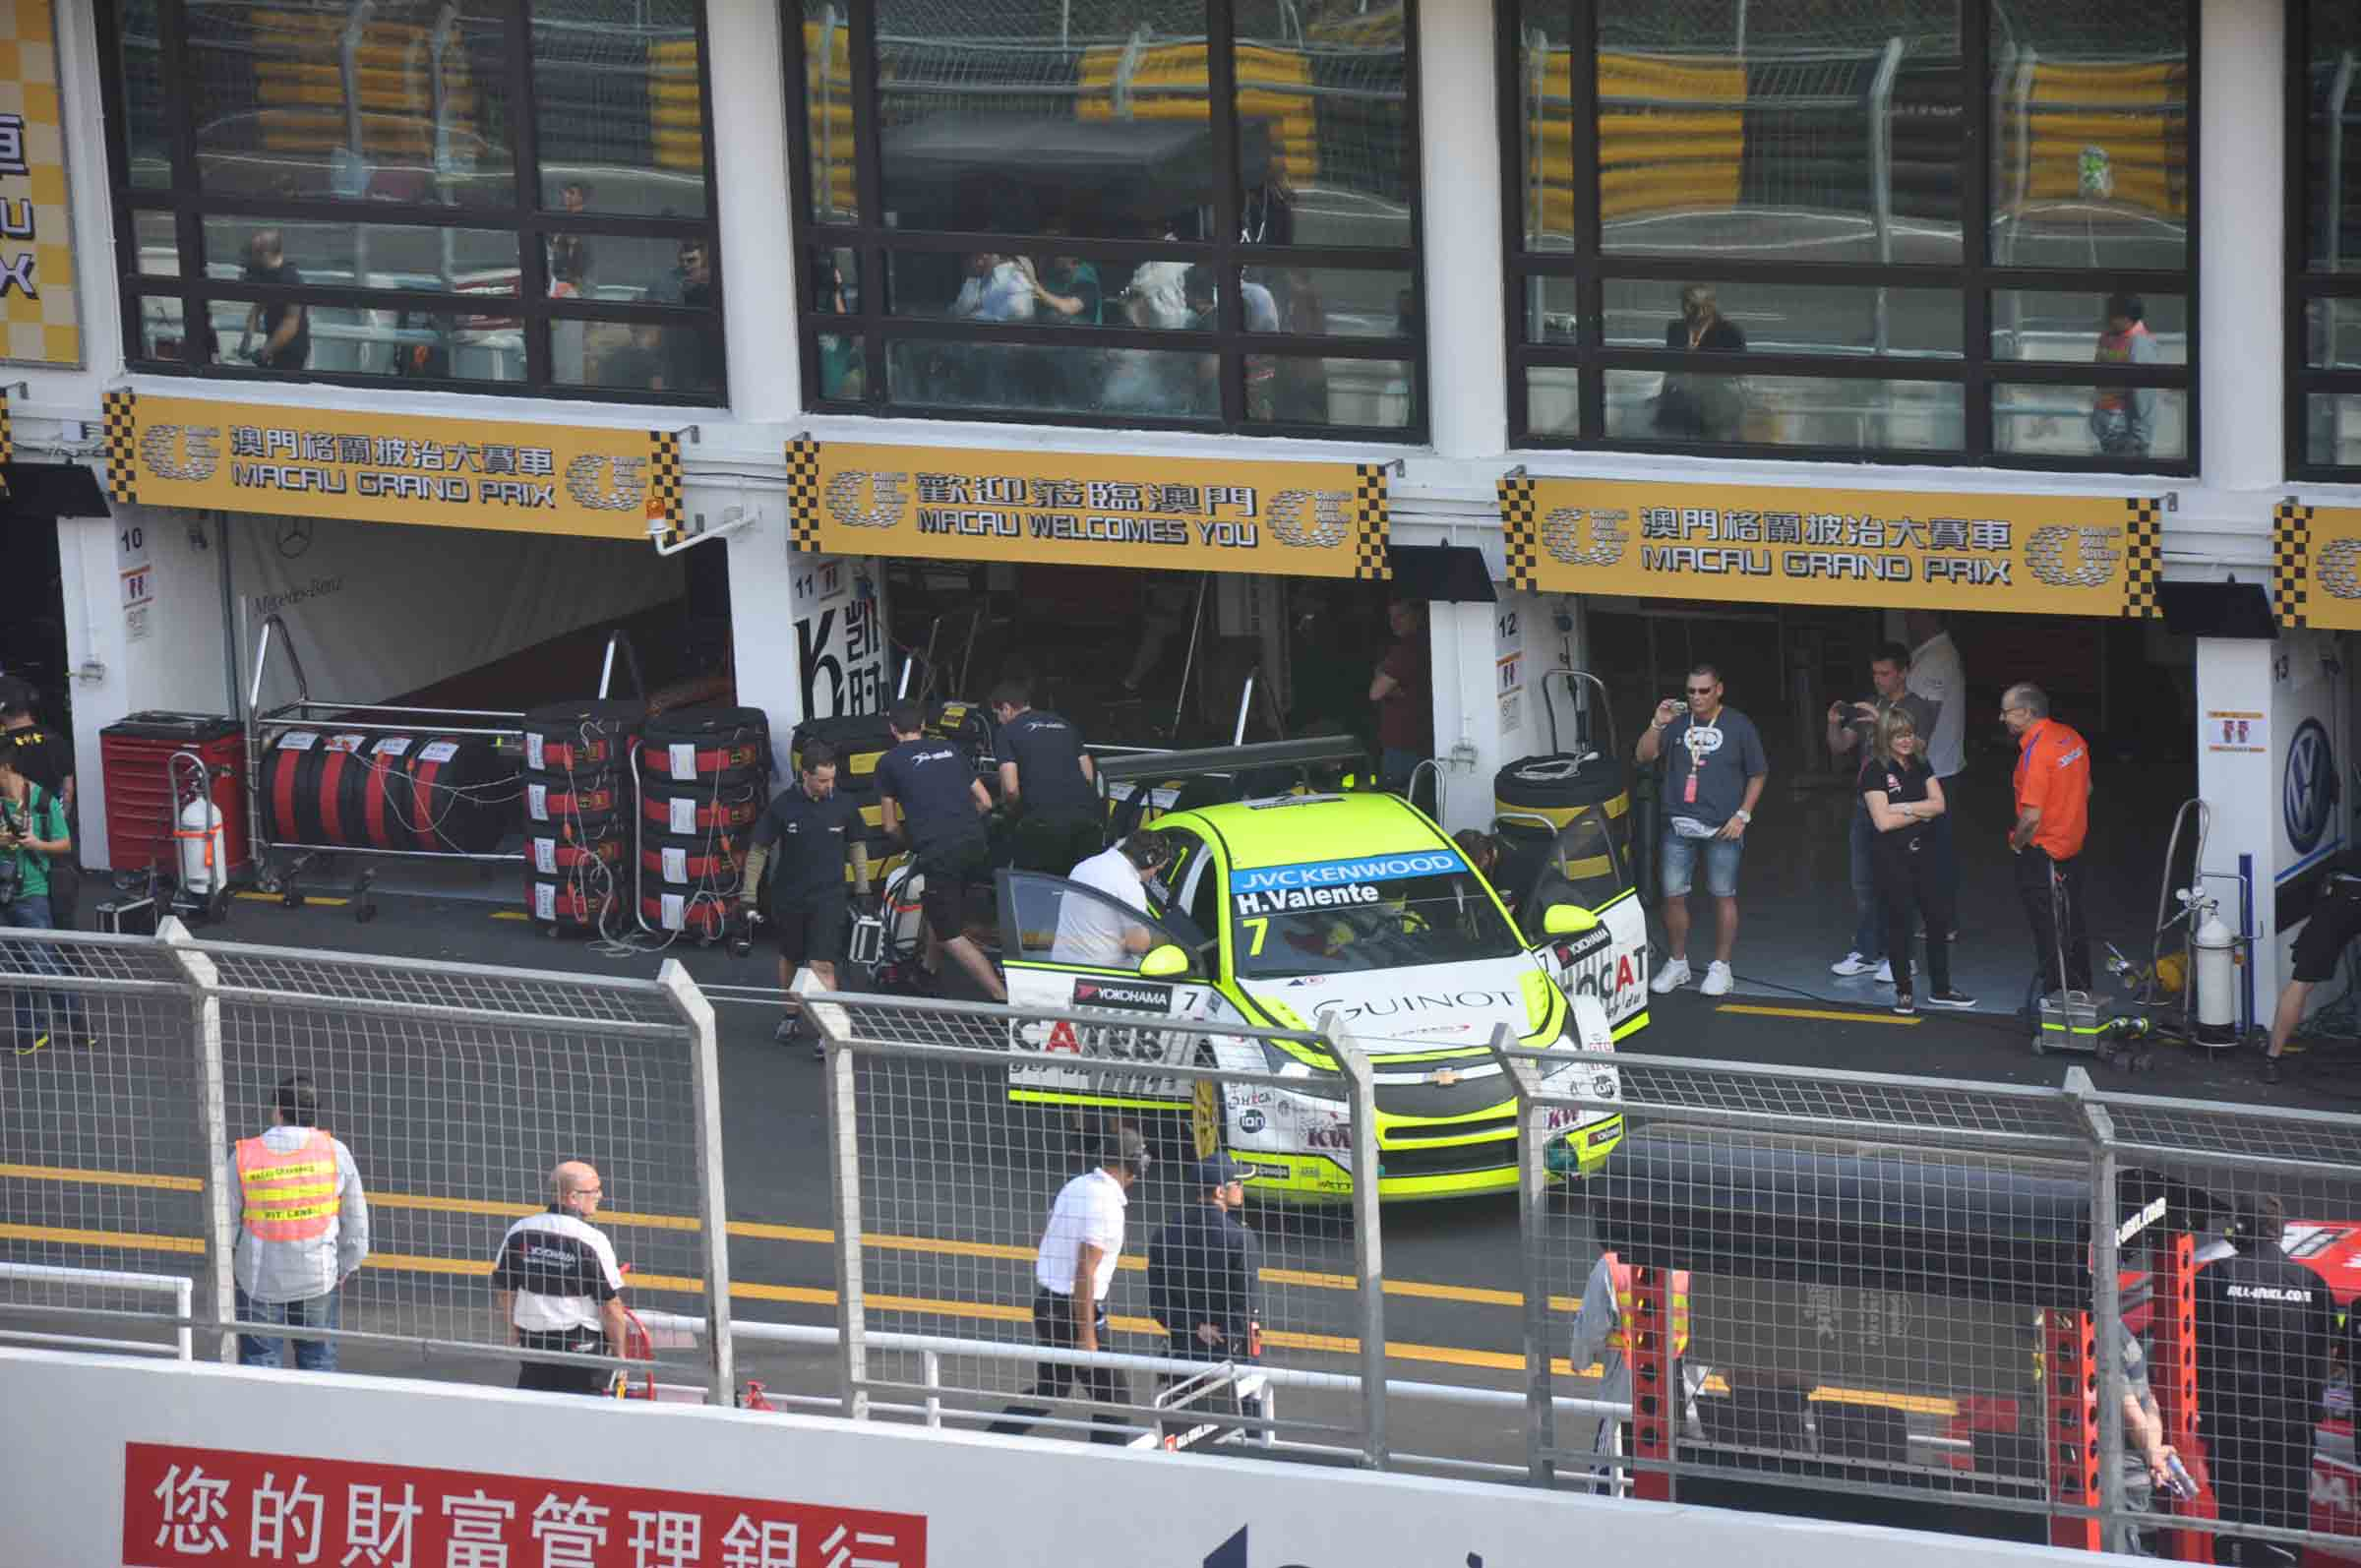 F3 Macau Grand Prix Race View of the pits from the Grandstand